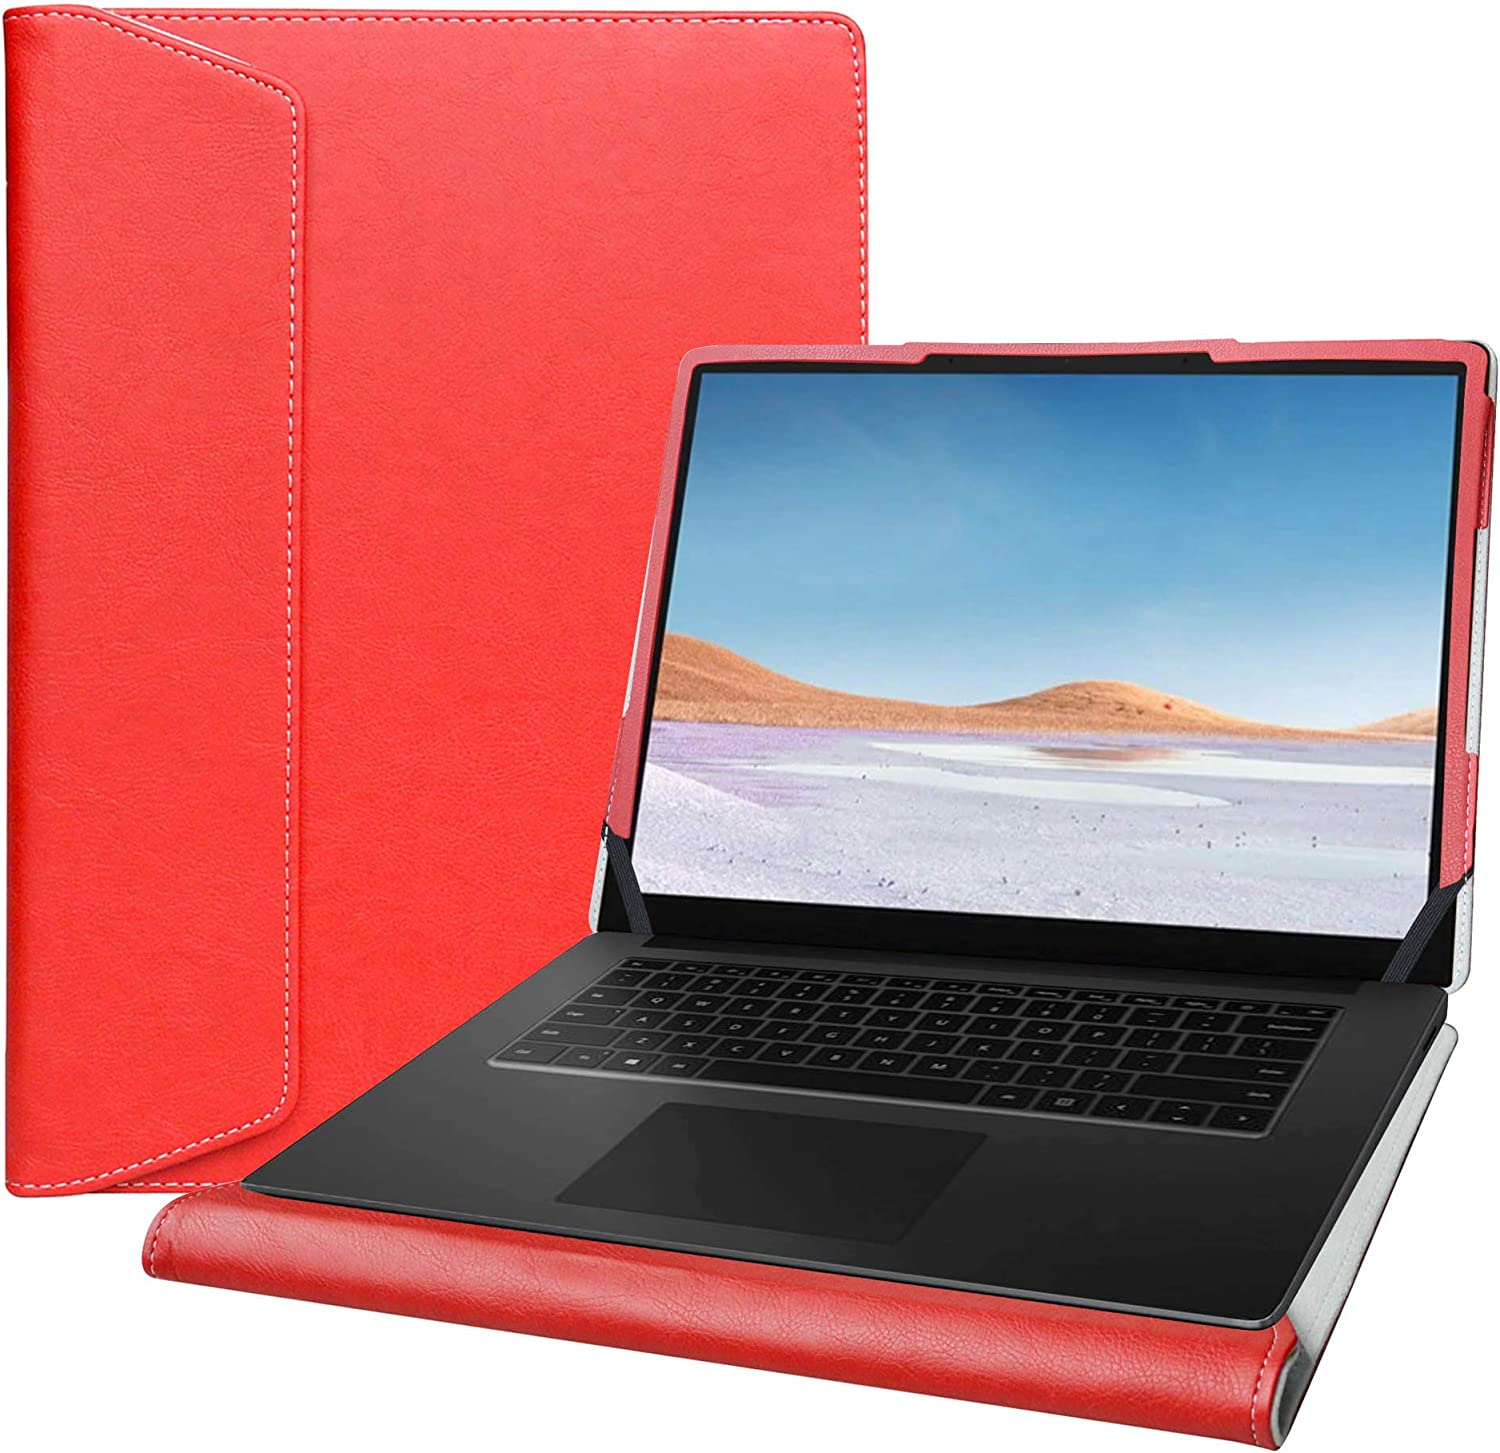 "Alapmk Protective Cover Case for 15"" Microsoft Surface Laptop 3 15 Series Laptop[Note:Not fit 13.5 inch Surface Laptop 1 2 3 and Surface Book],Red"